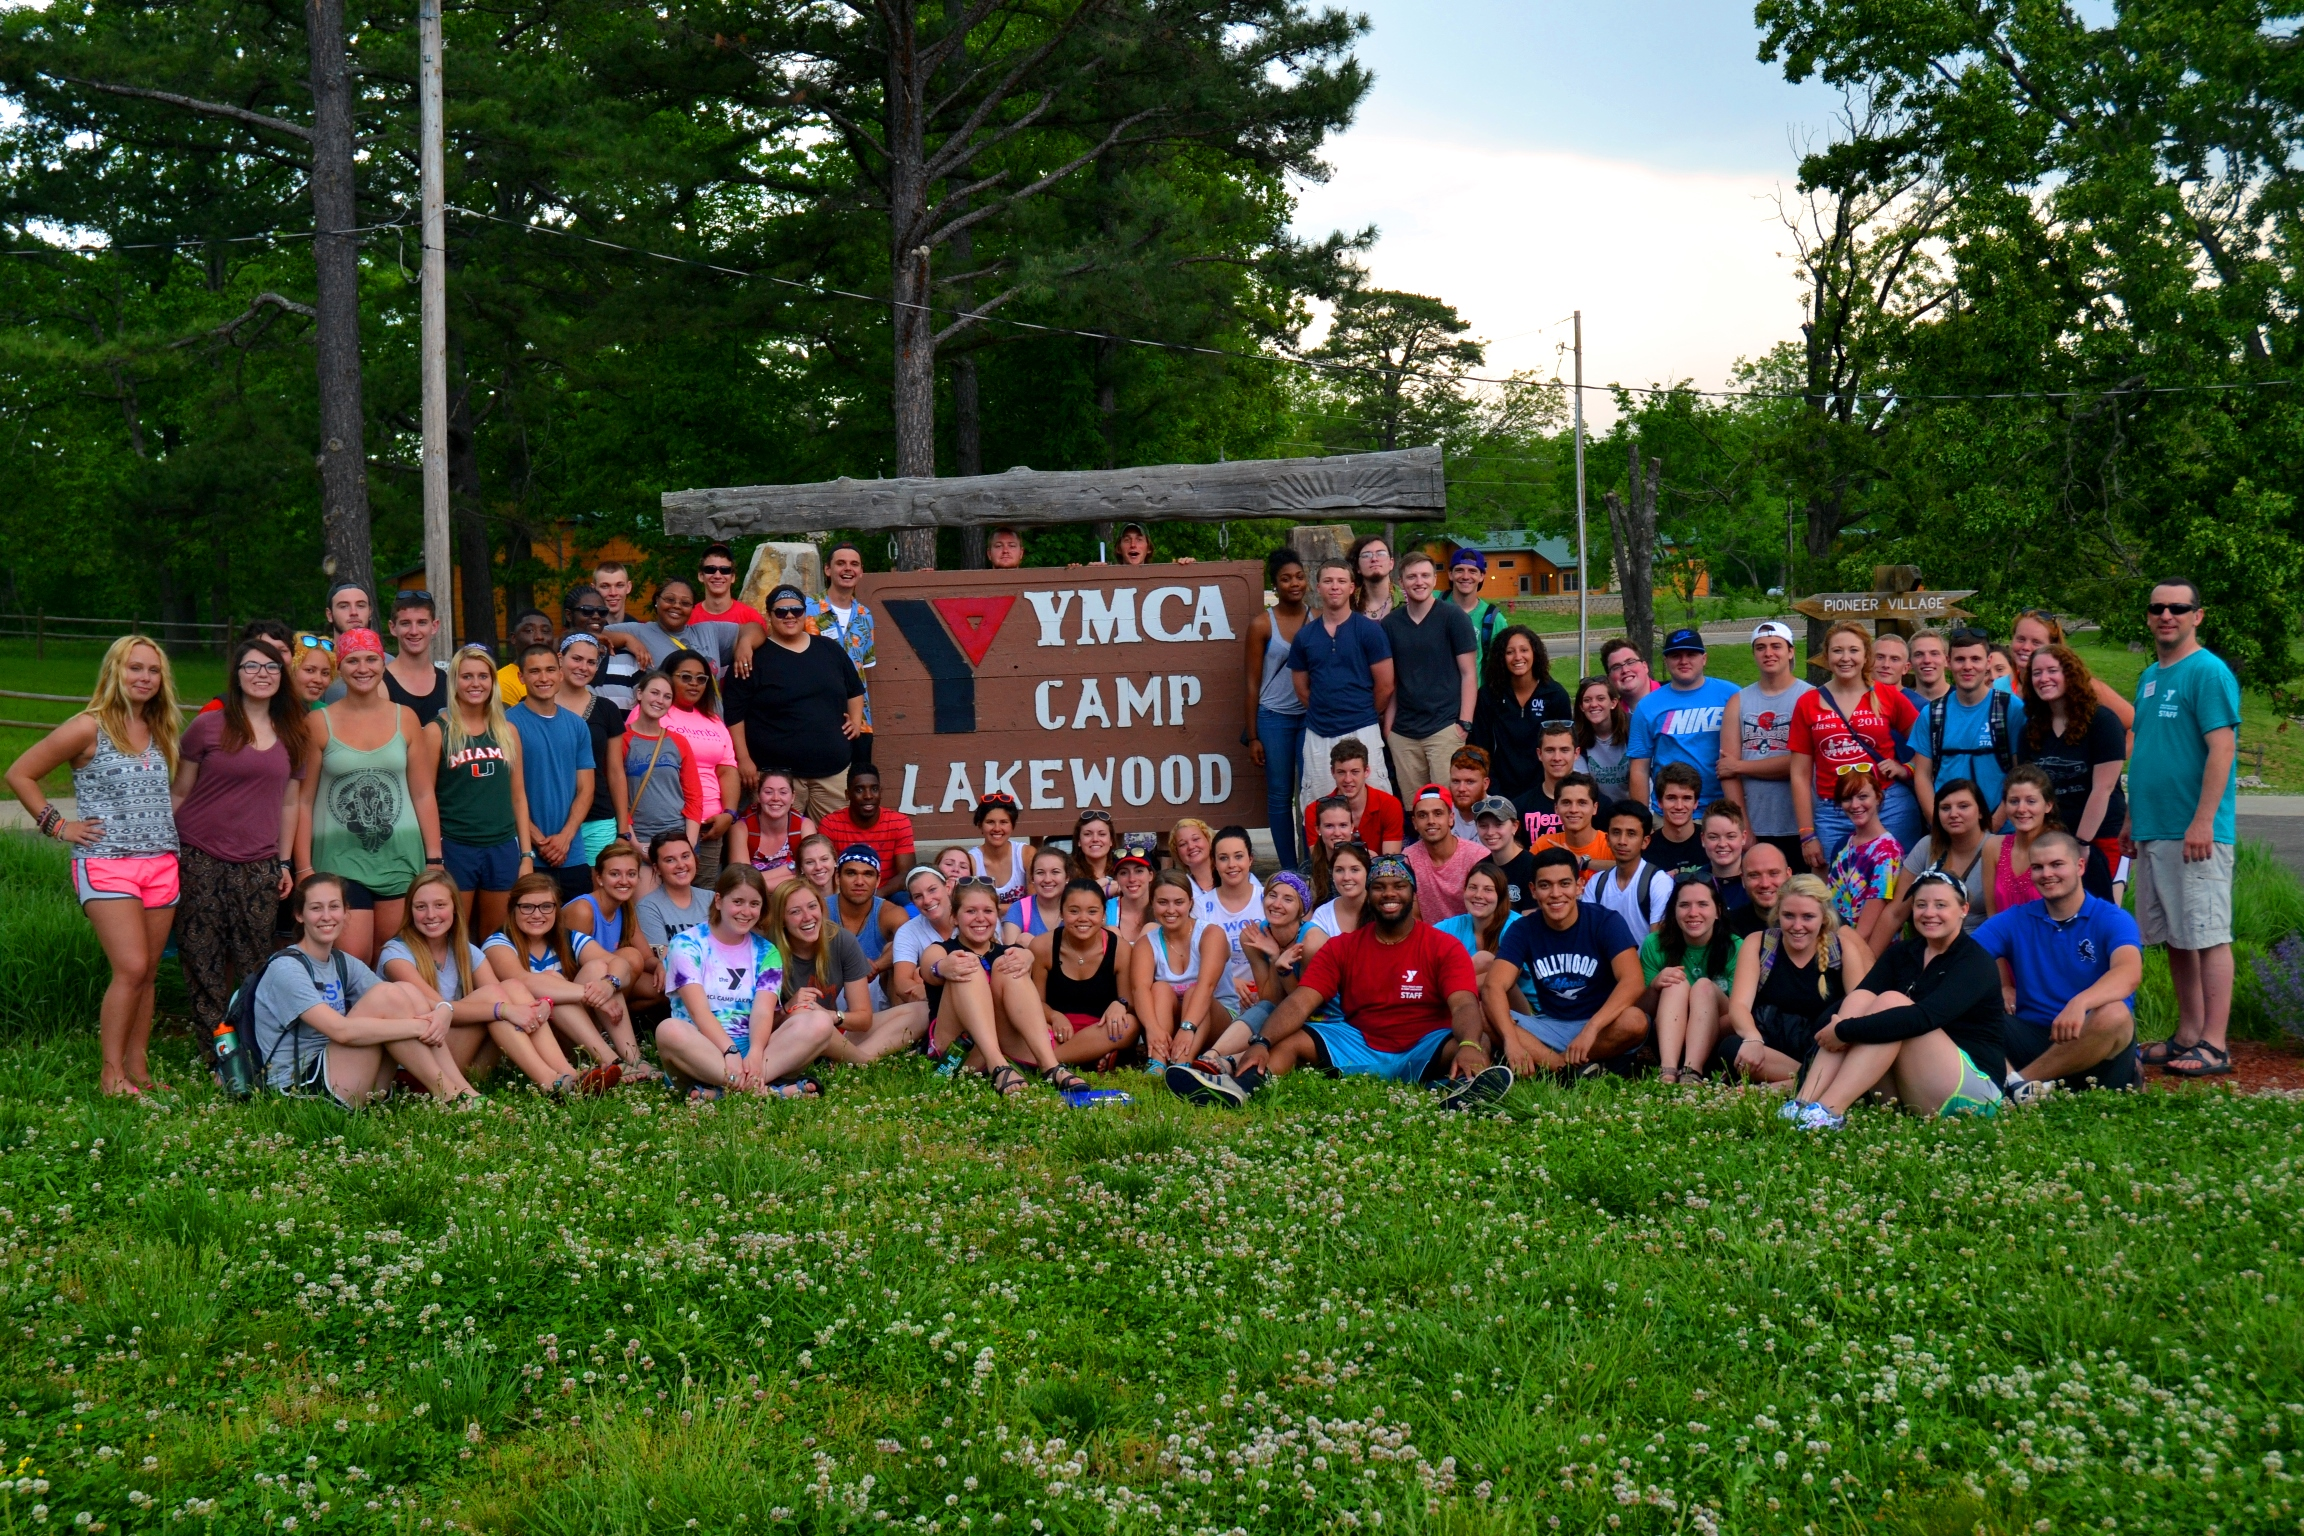 Summer Program - Water Sports | YMCA Camp Lakewood - Overnight Summer Programs